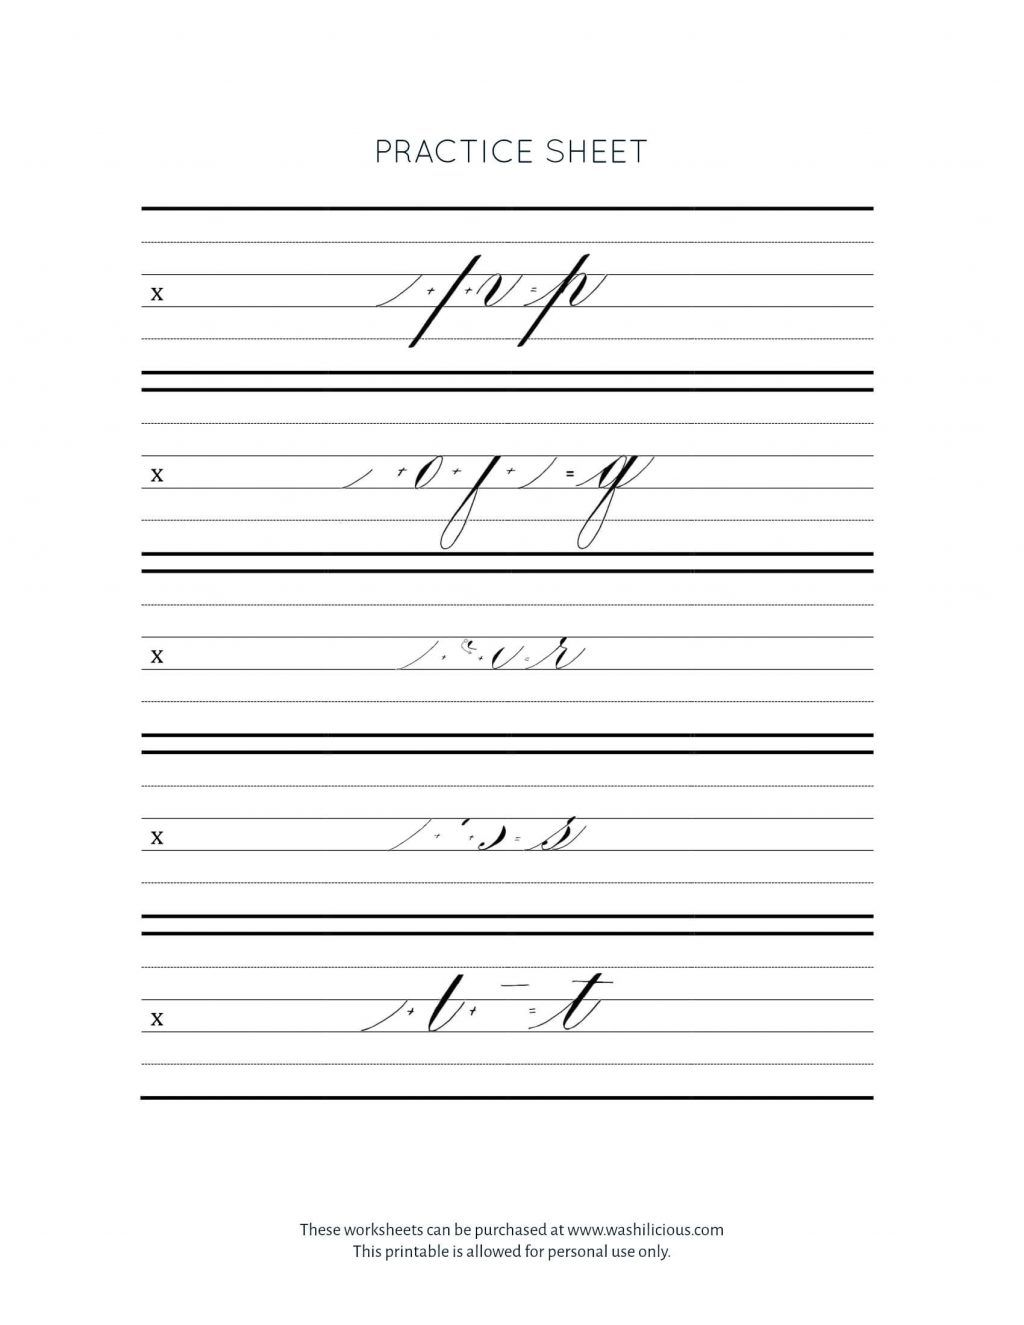 Vpk Practice Worksheets Sheets Kids Worksheet Ideas